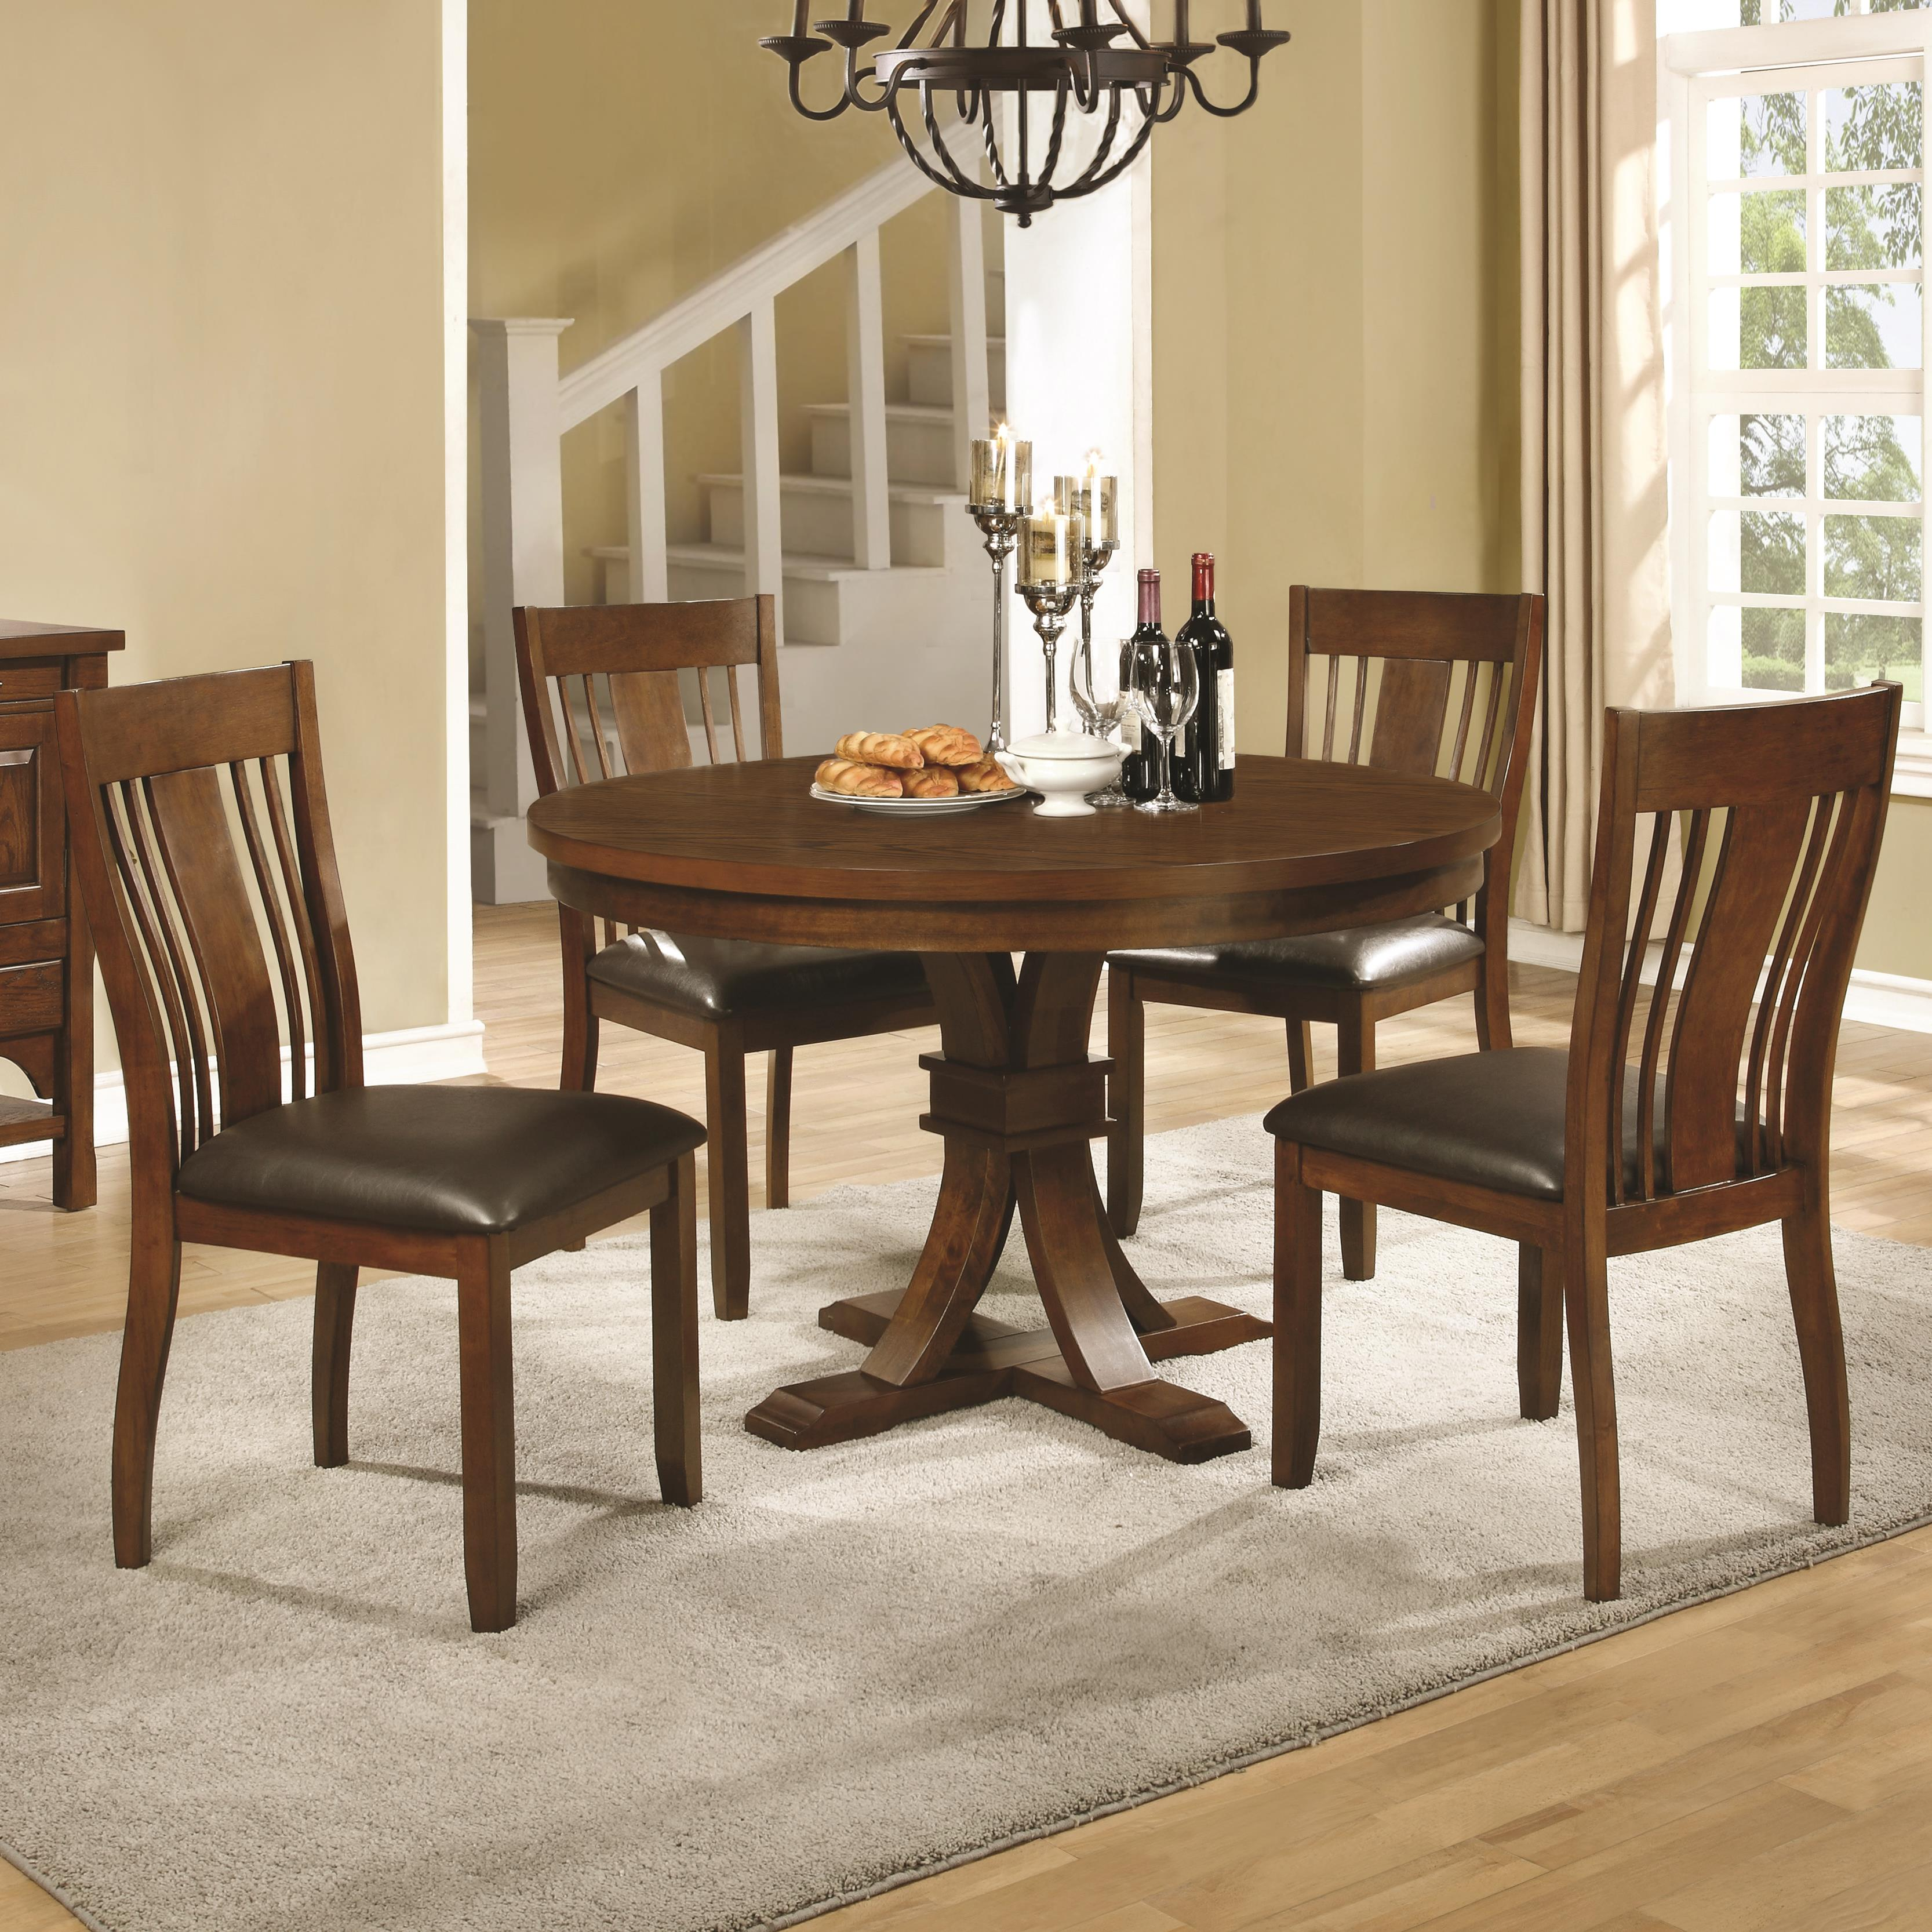 Coaster Abrams 5 Piece Round Table Set - Item Number: 106480+4x106482